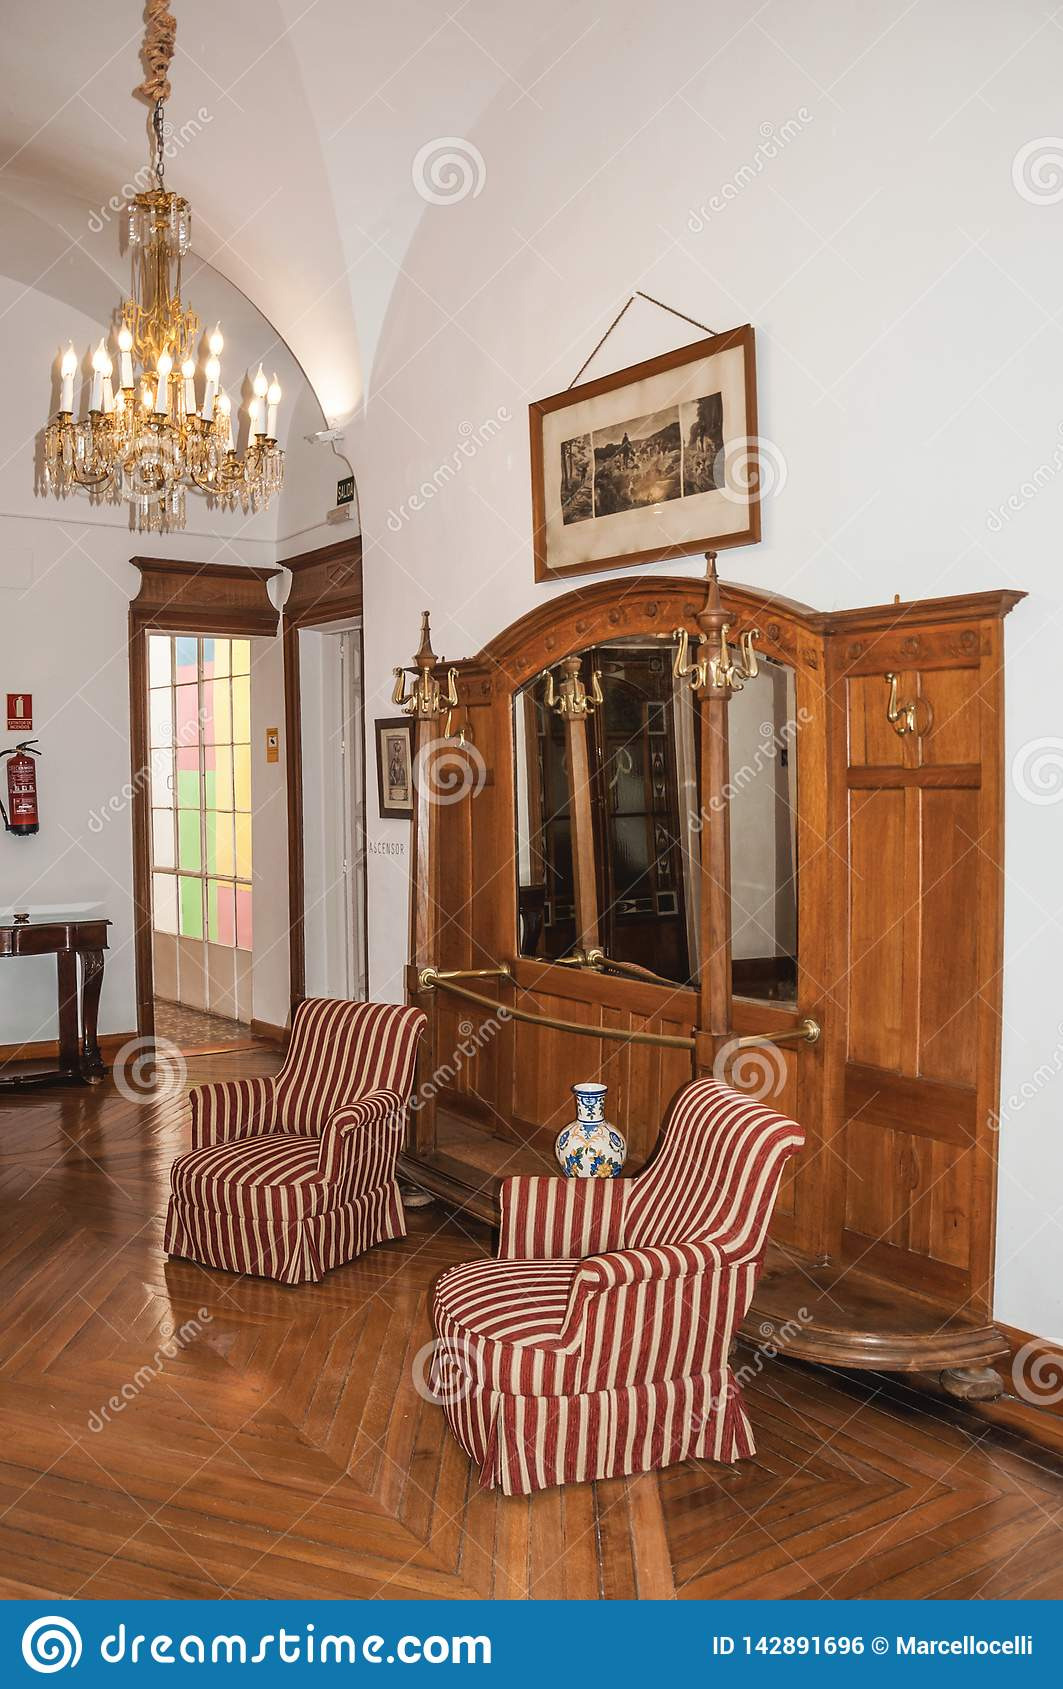 living room antique furniture historical building caceres spain july doors old cute charming town fully